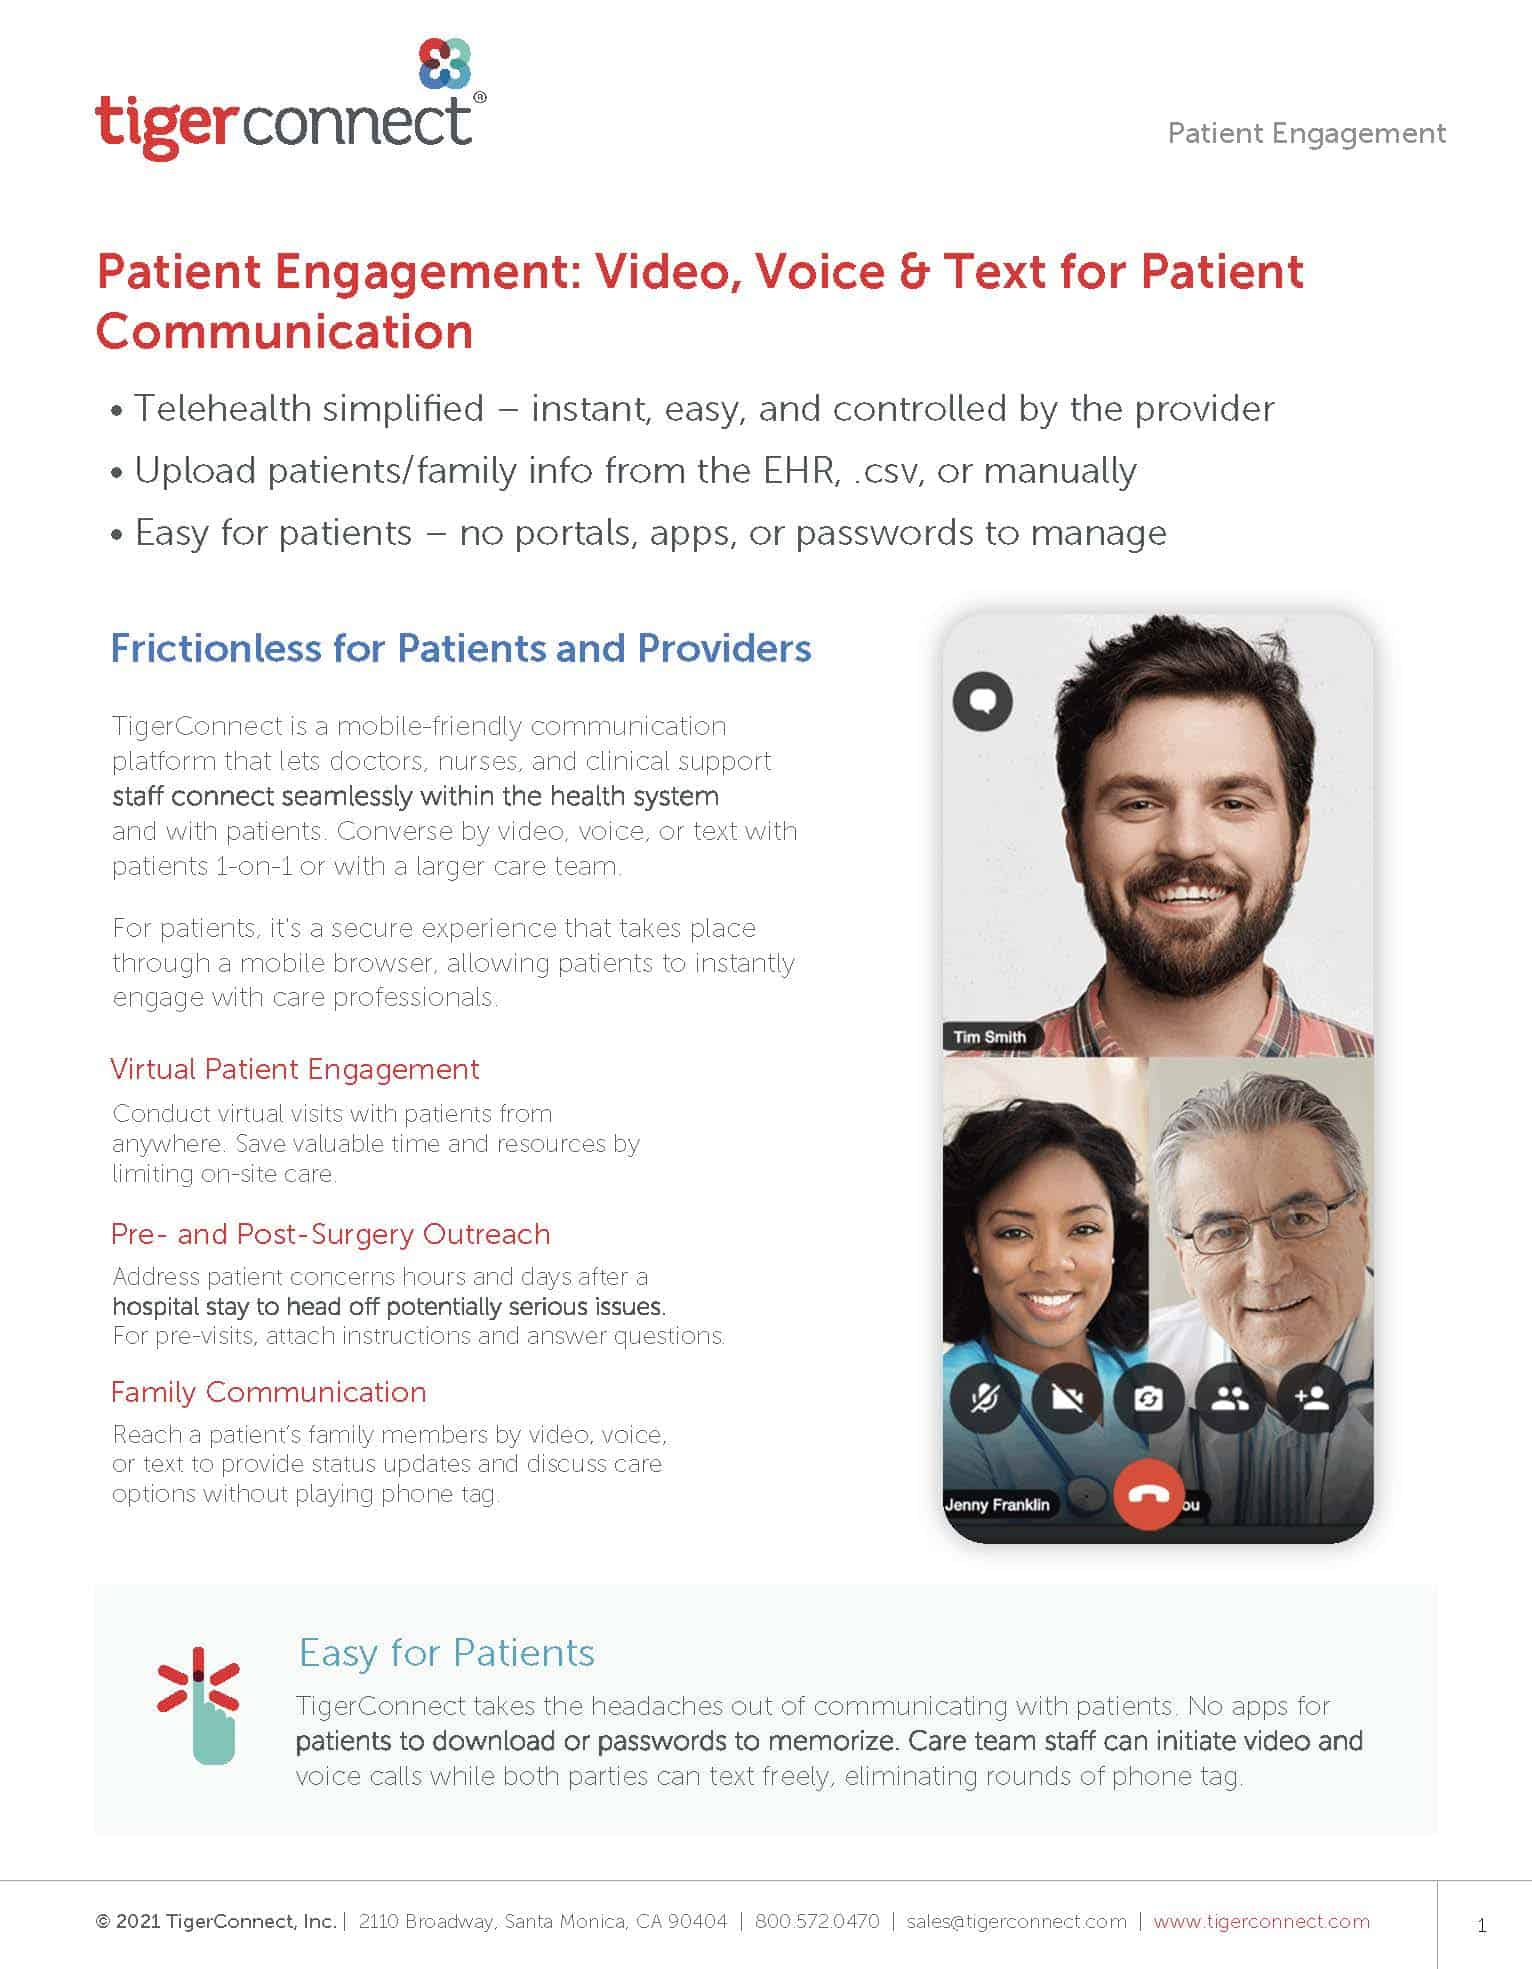 Download the TigerConnectPatient Engagement data sheet